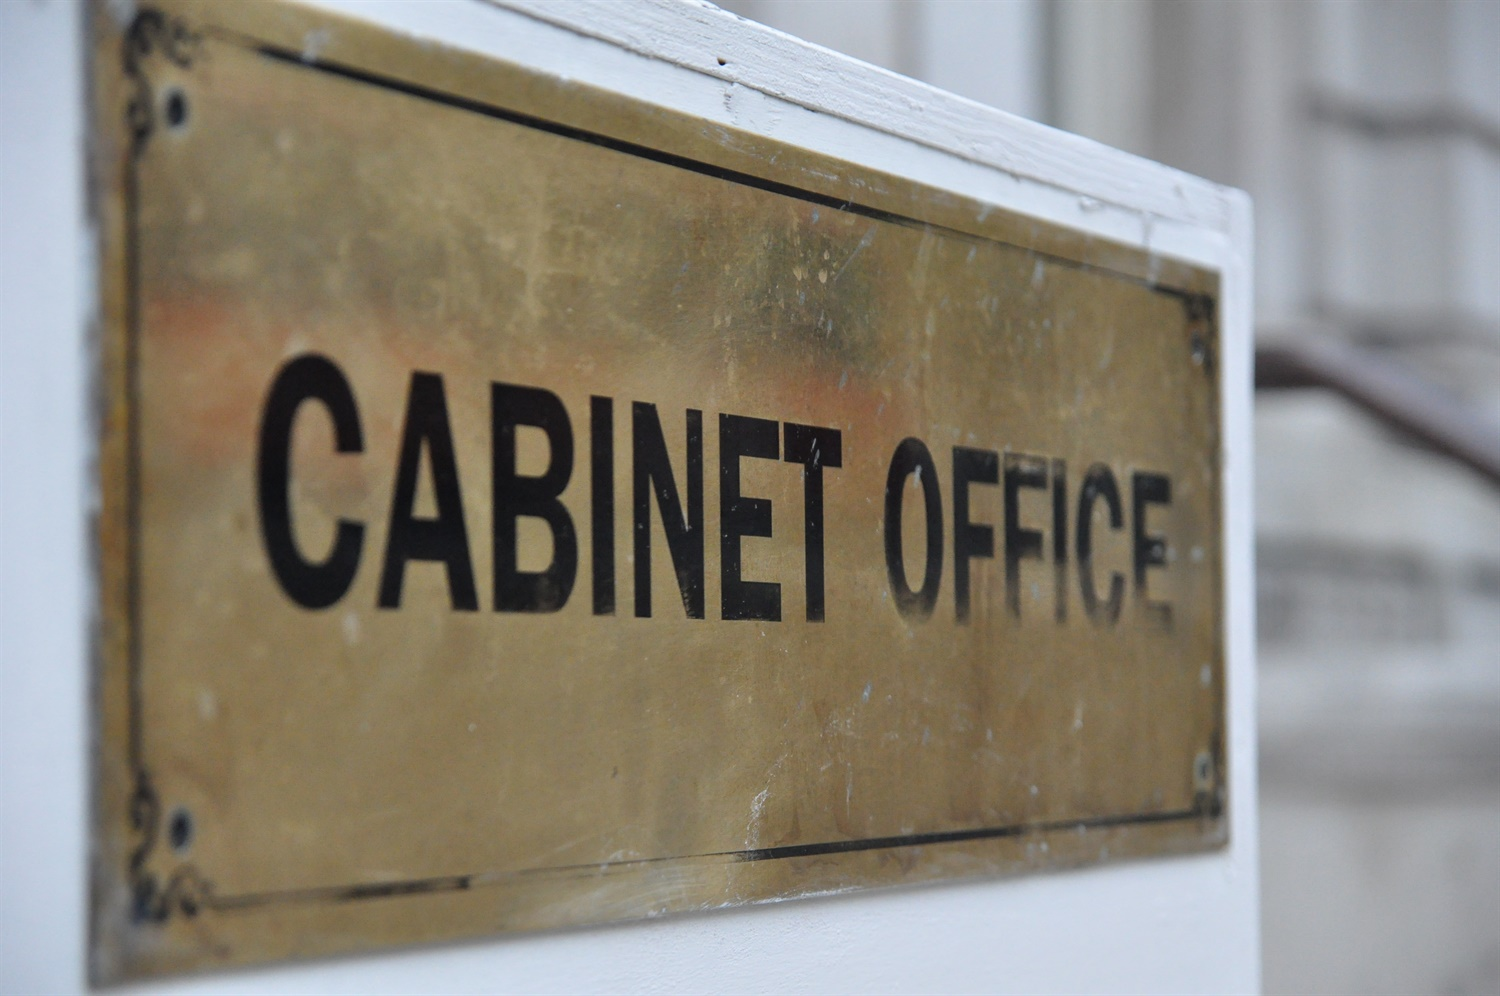 Clear leadership needed as Cabinet Office scheme fails to deliver ...